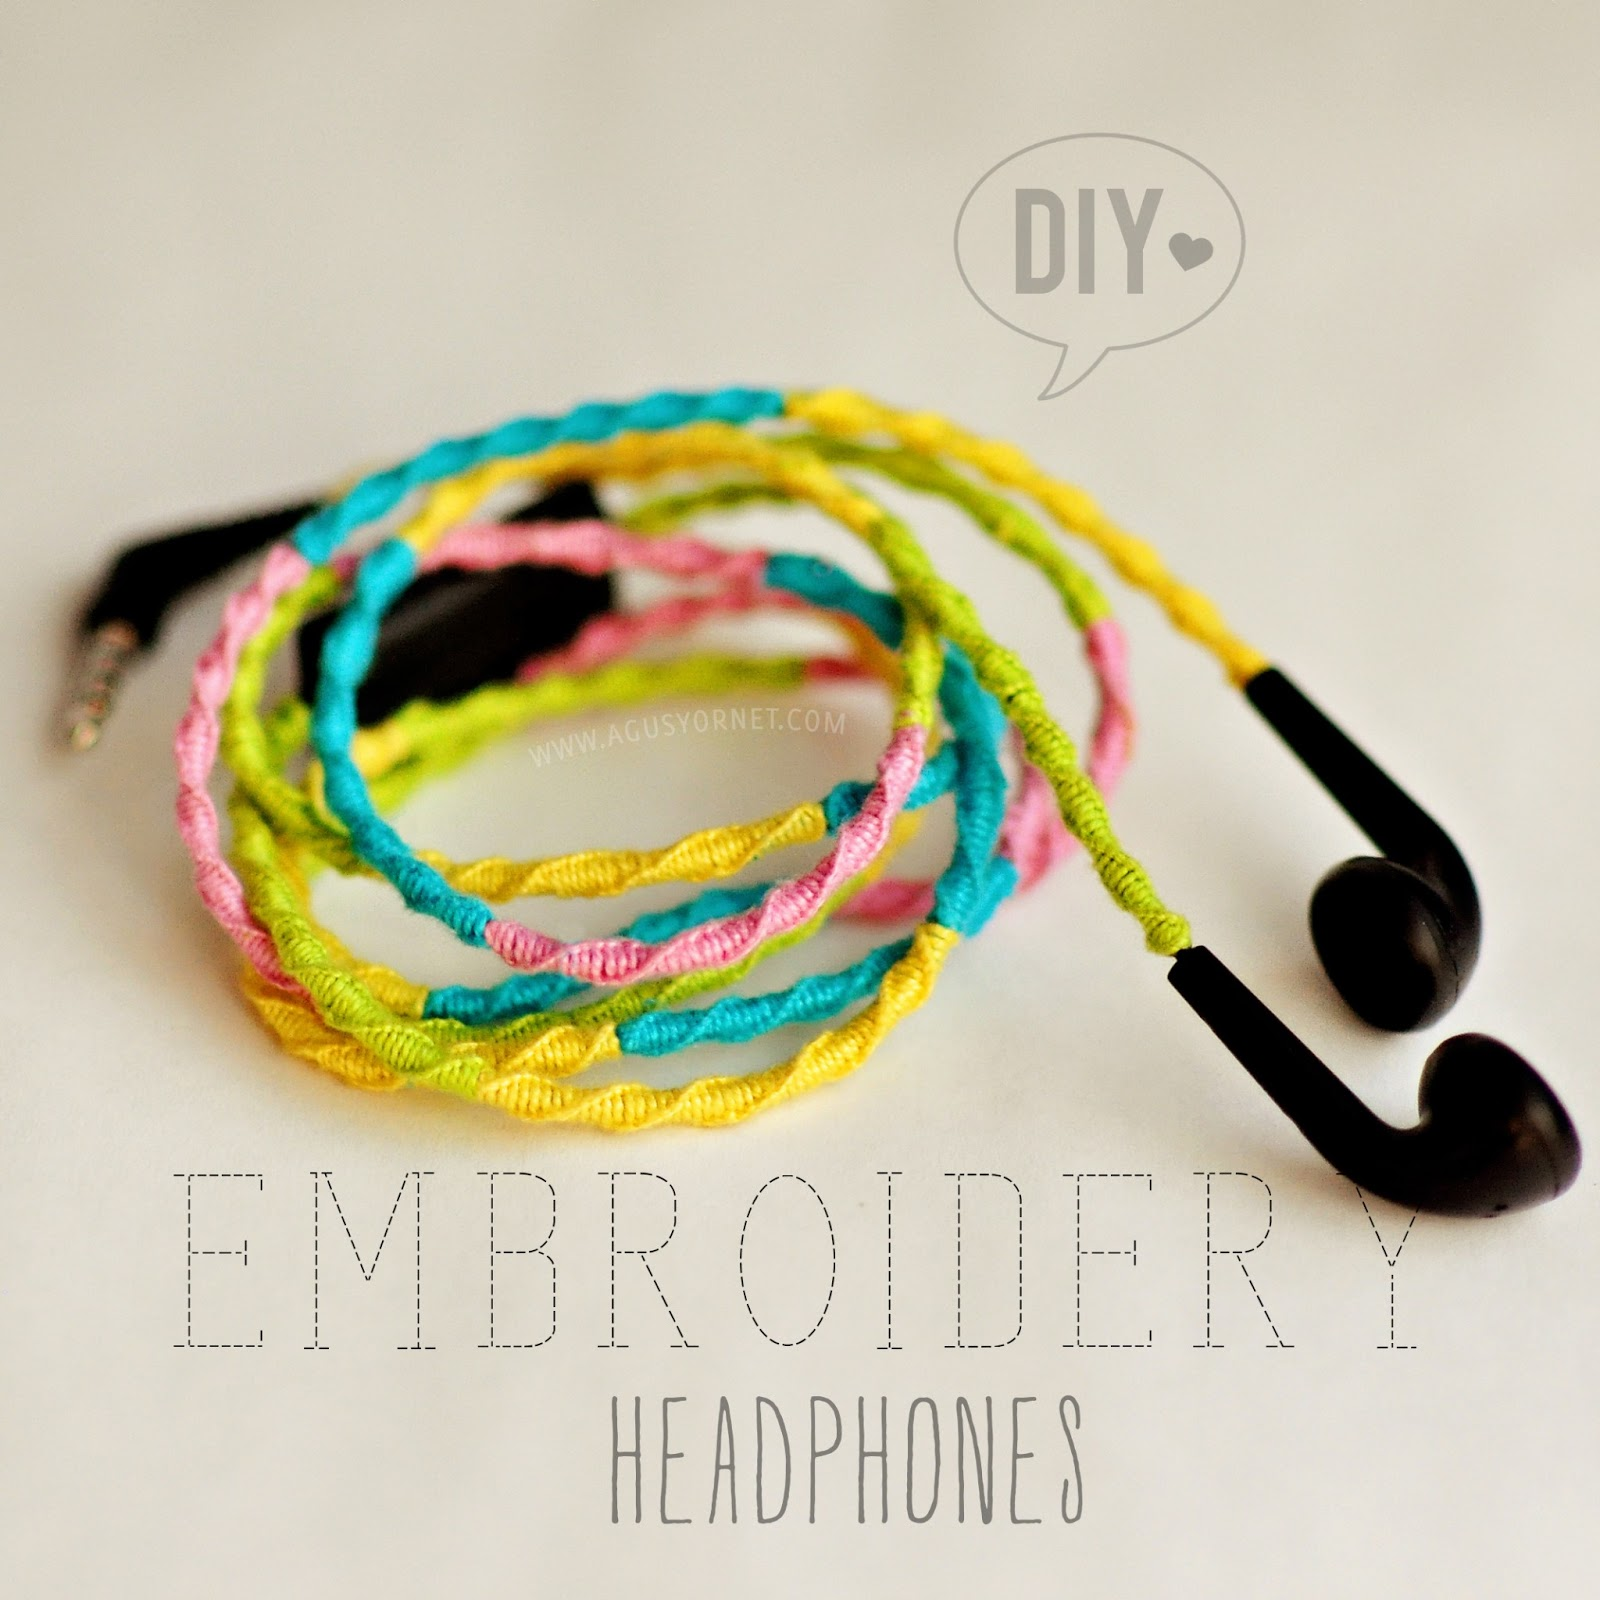 Diy embroidery headphones auriculares de colores agus